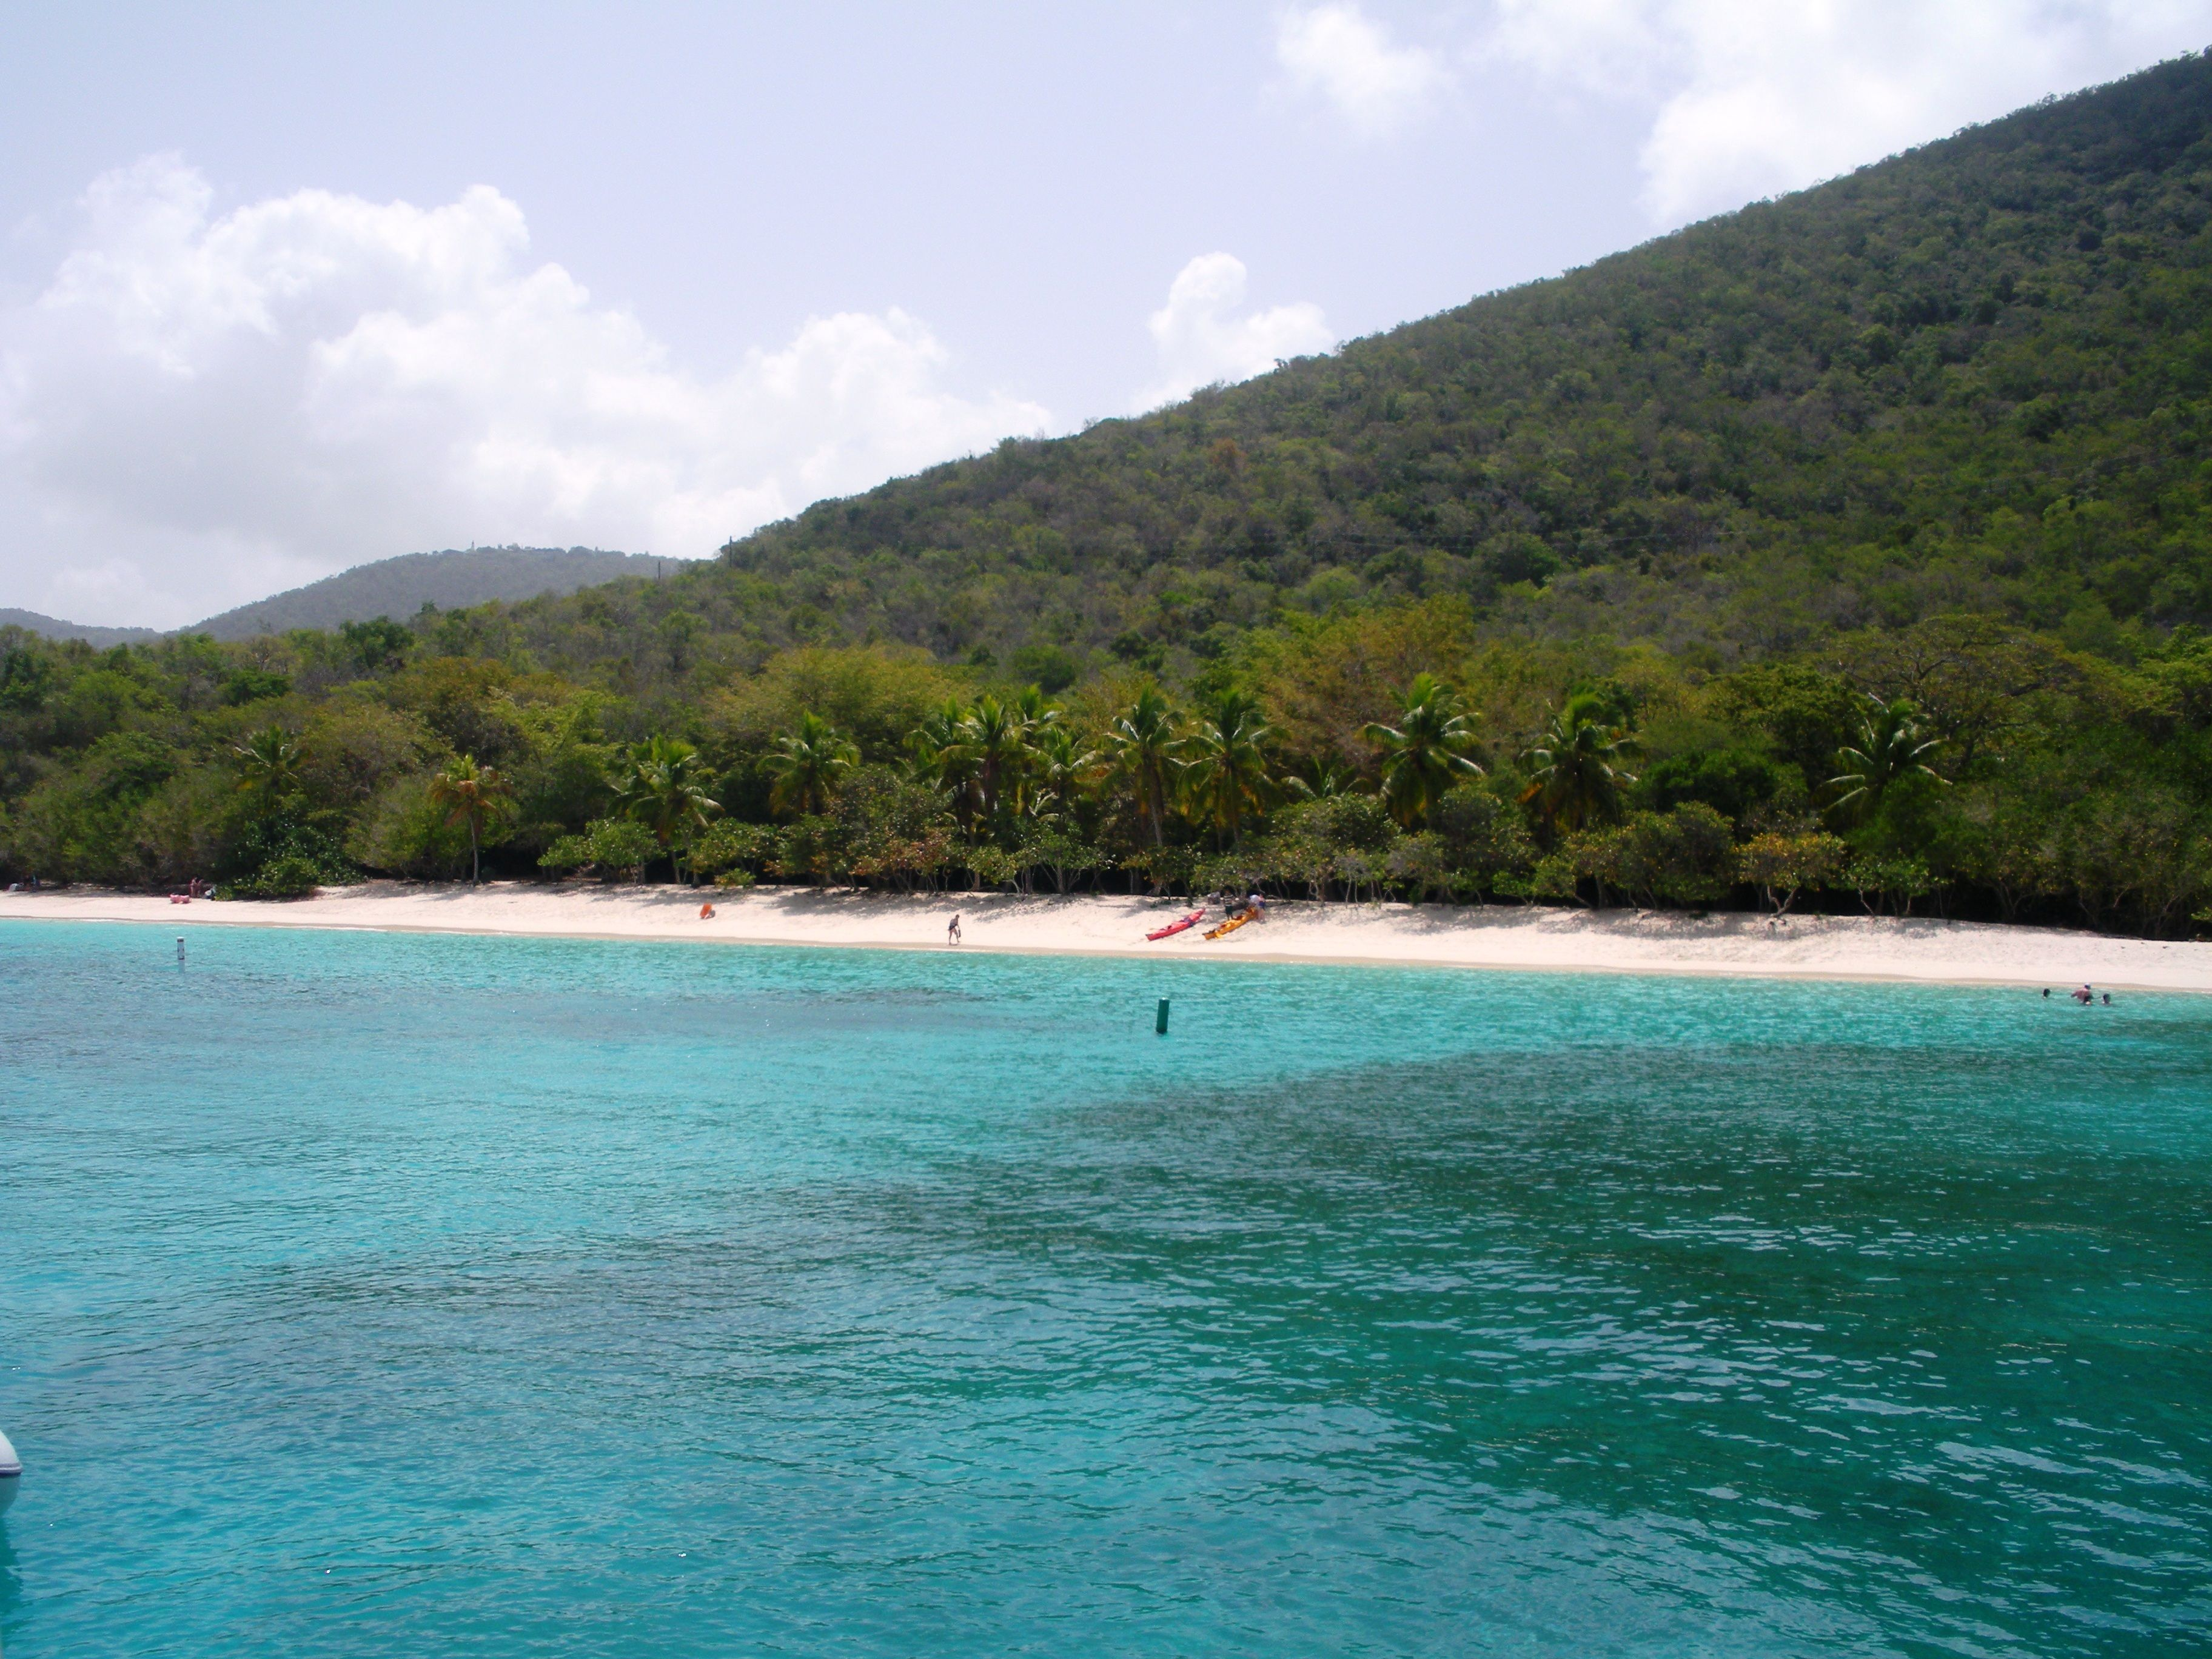 St thomas honeymoon beach travel places i have been for Honeymoon in st thomas